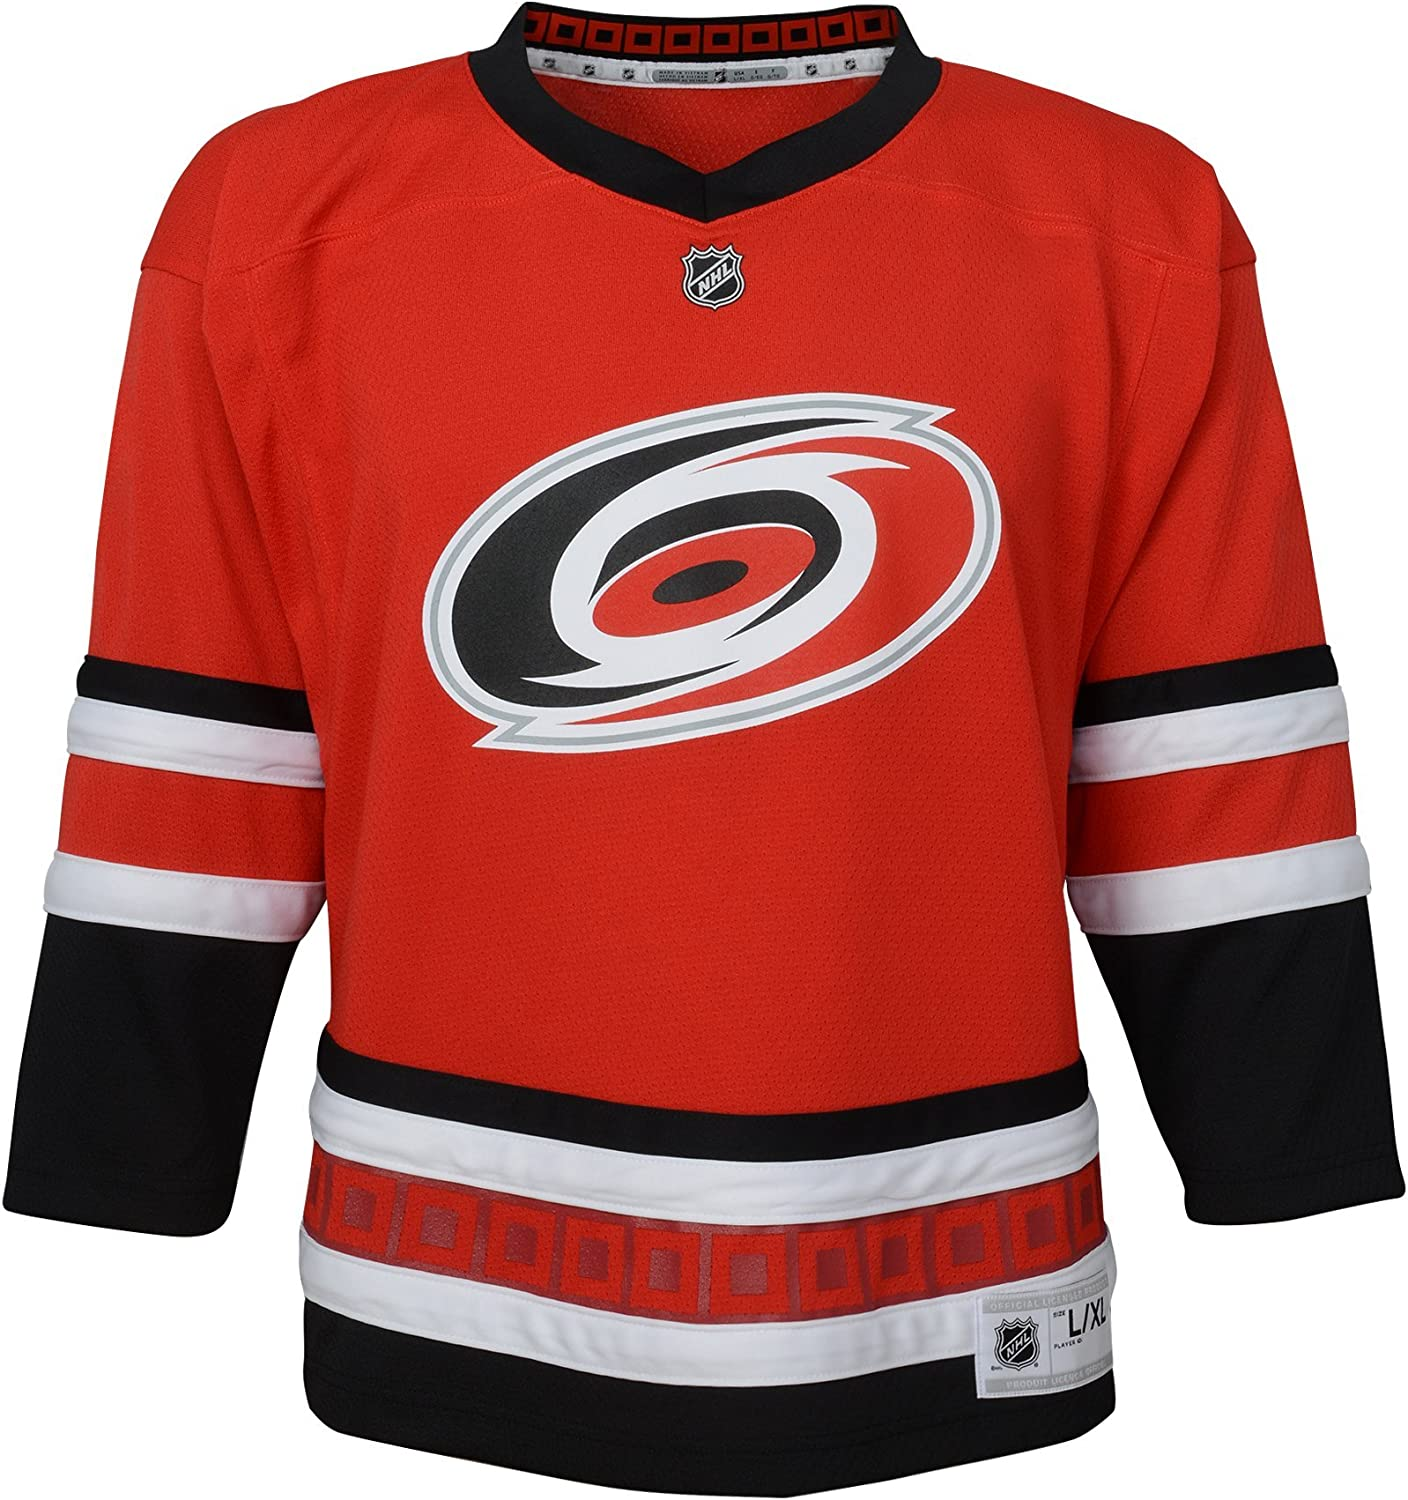 Outerstuff NHL Boys Replica Jersey-Home